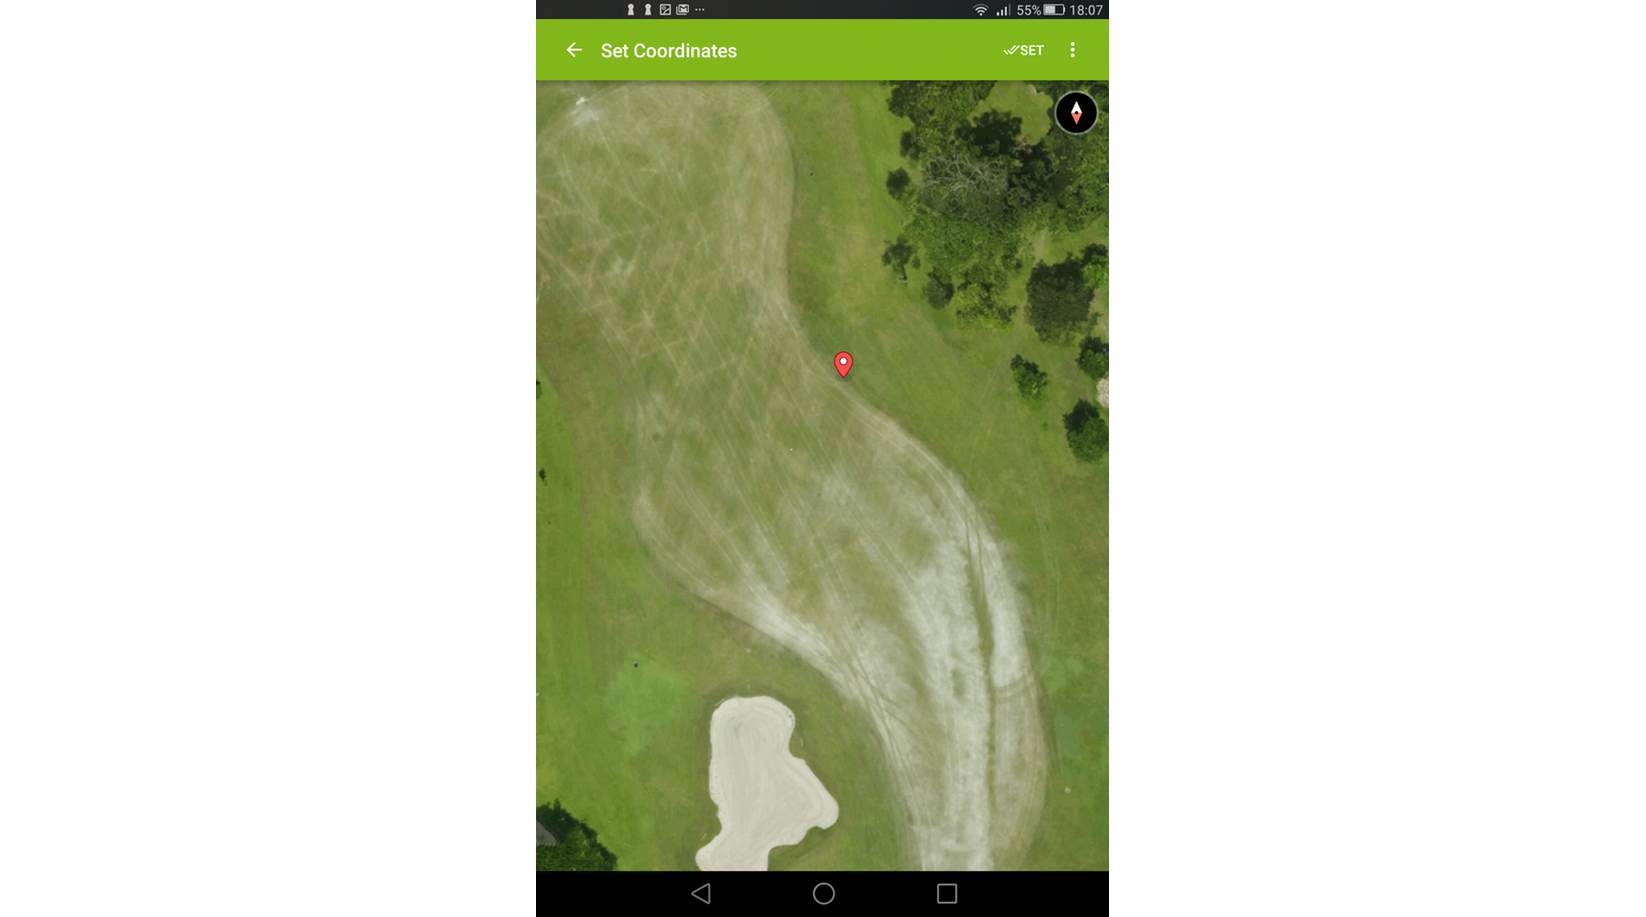 mapgage fieldapp screenshot golf issue record list detailed map view